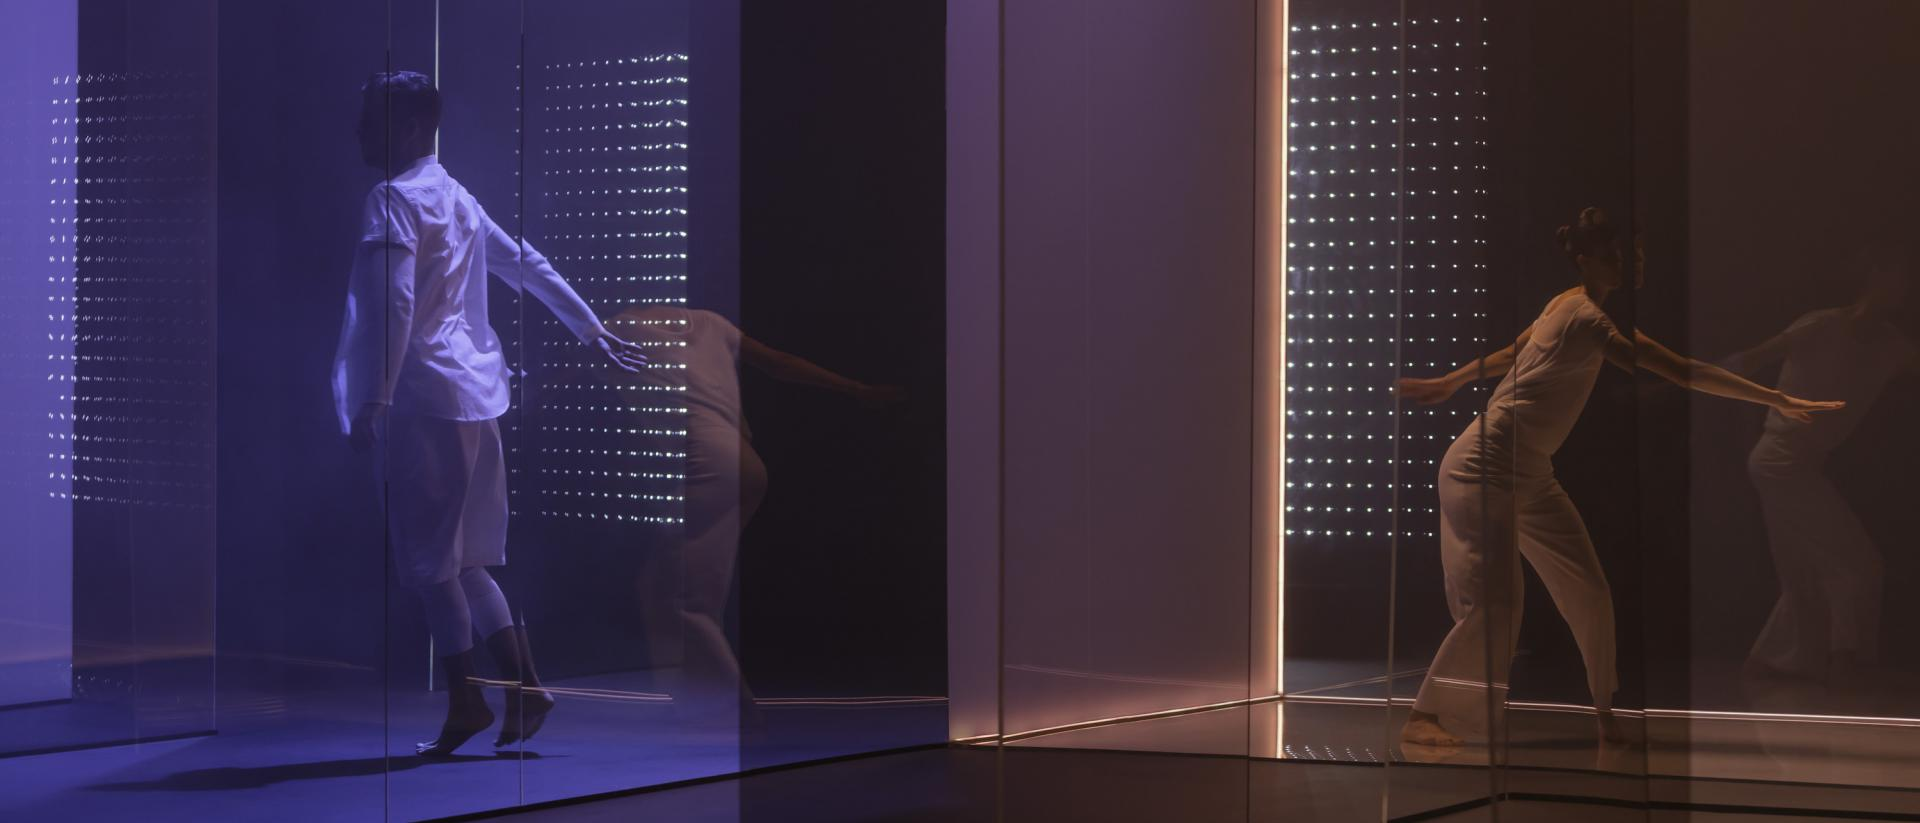 Glass creates emotions a conceptual movie by AGC Glass Europe - igs magazine - videos - 1